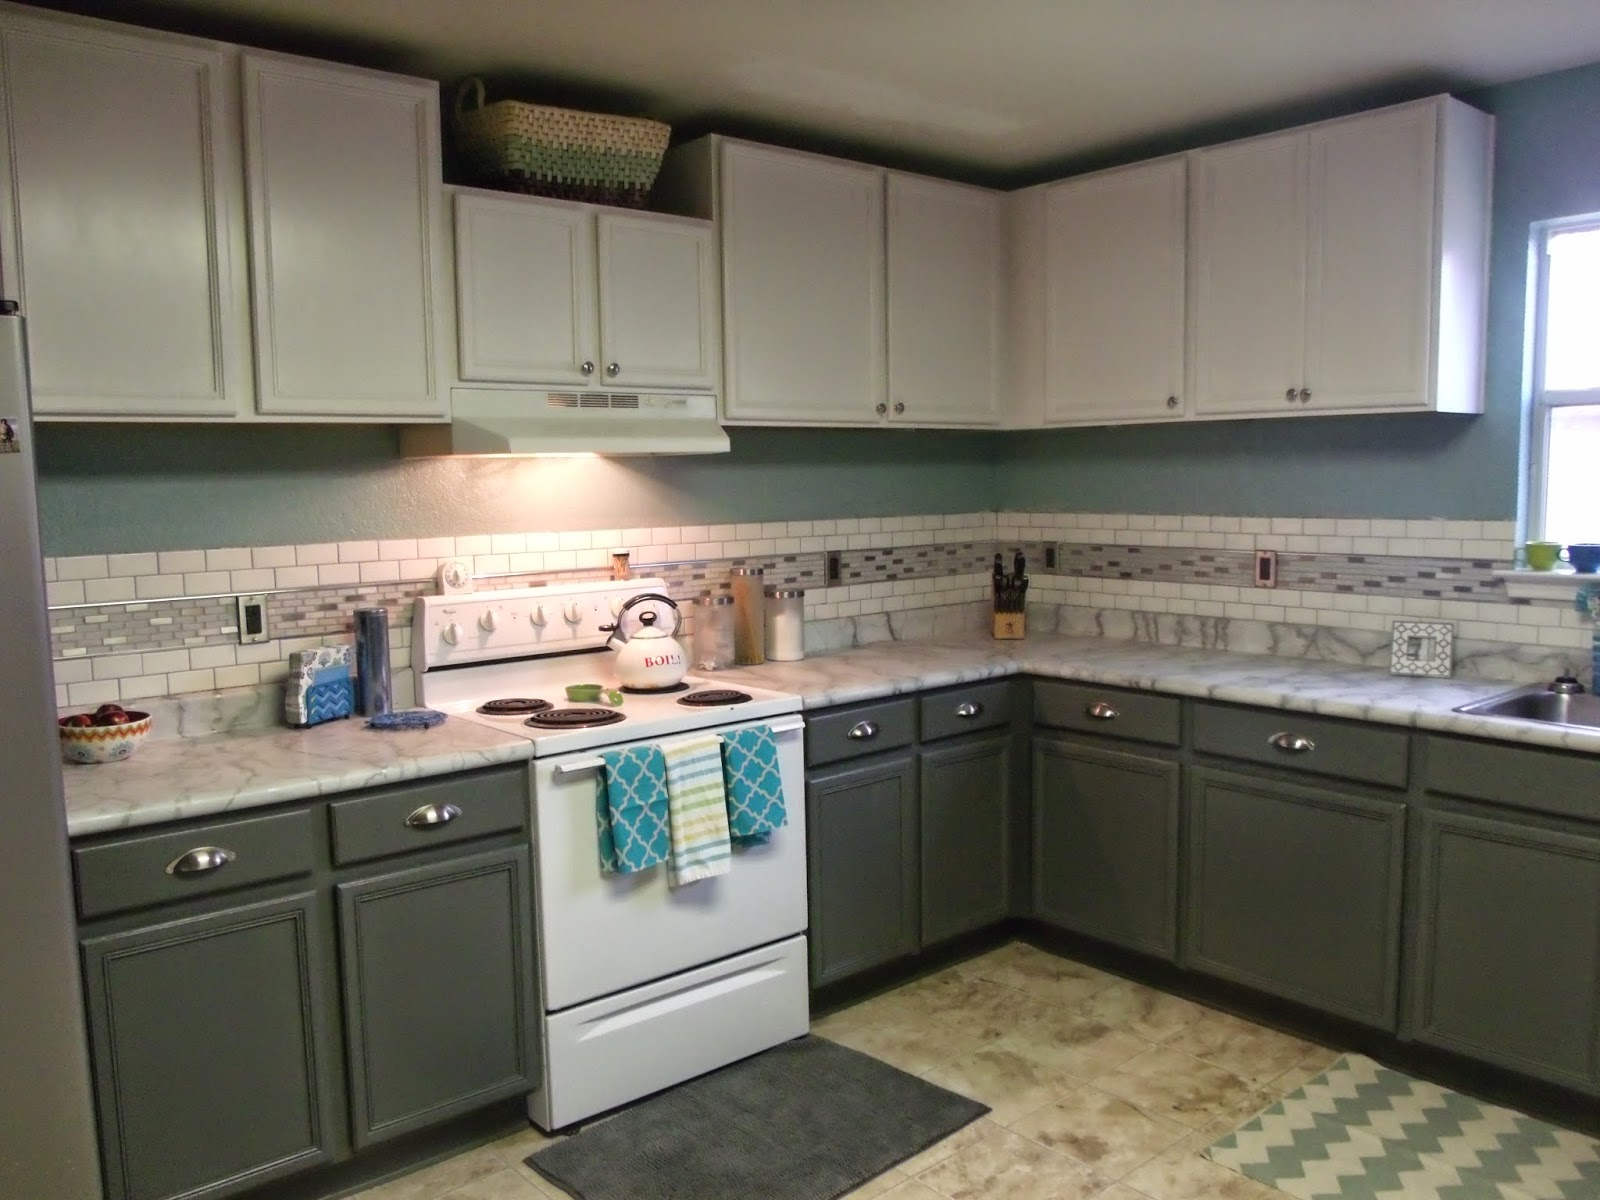 Rustoleum Countertop Paint Earth : The Kitchen Remodel (or better known as the